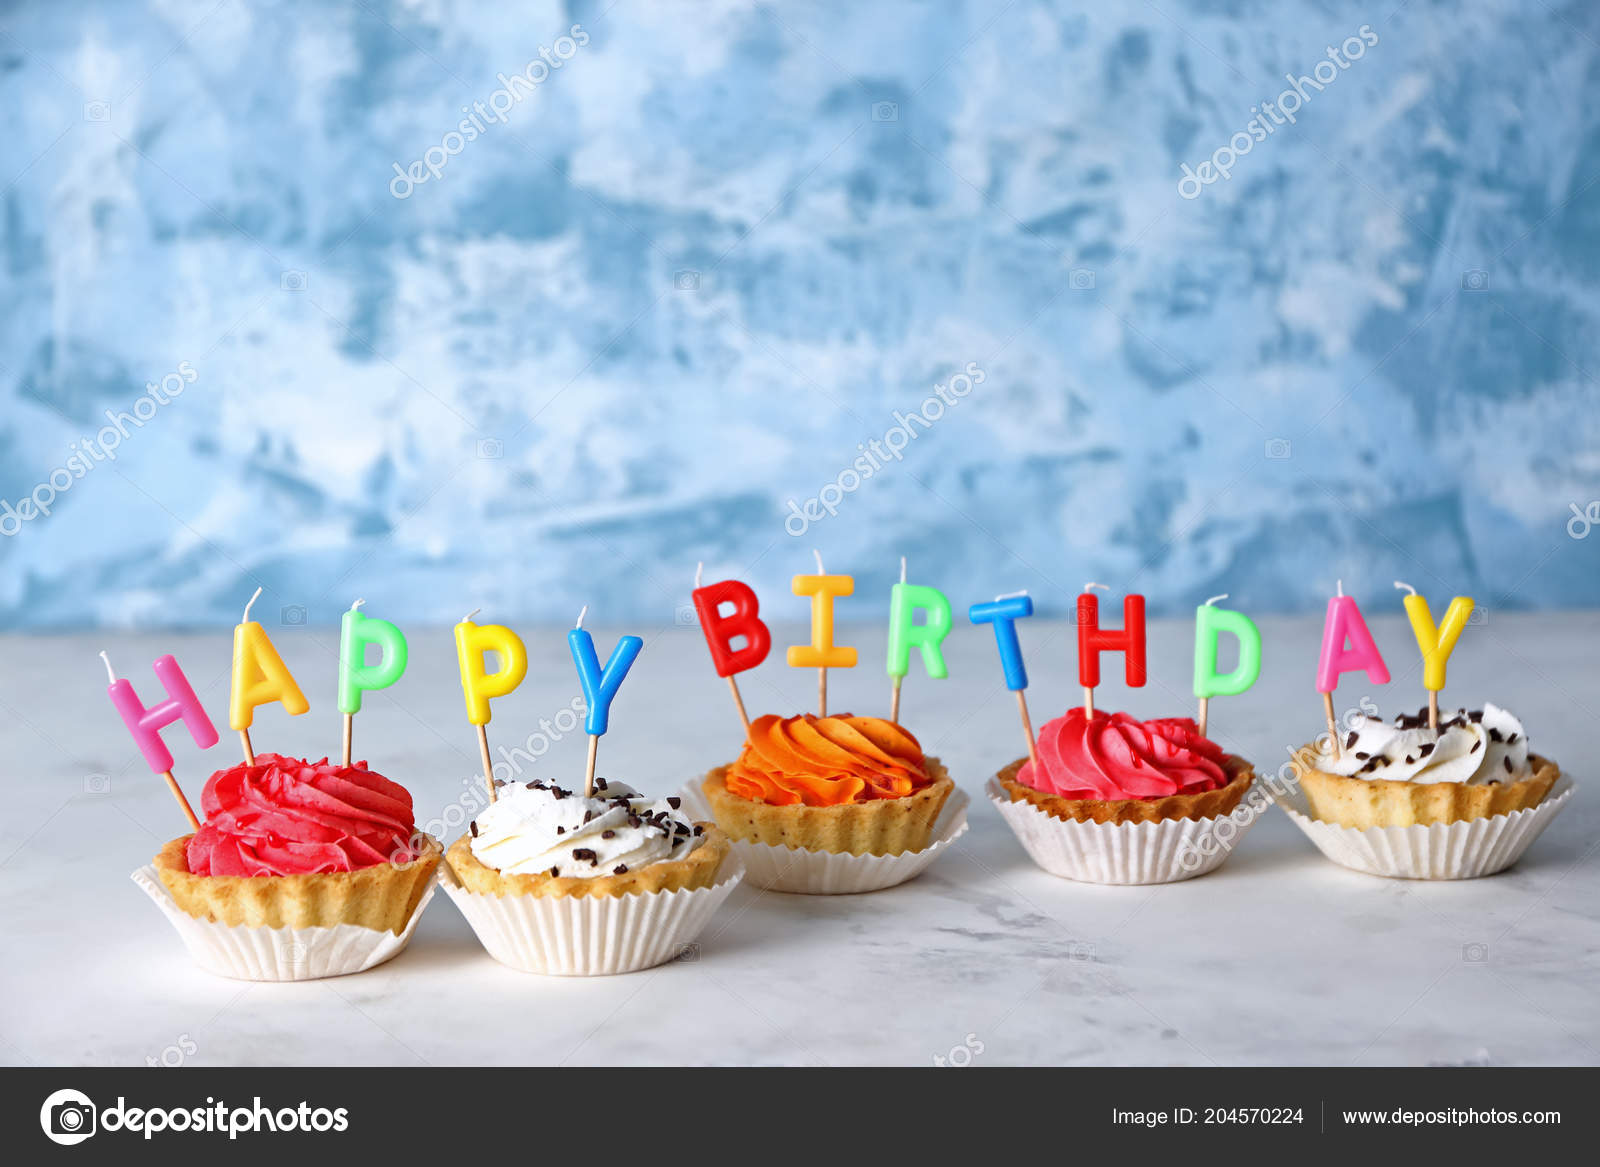 Colorful Birthday Cupcakes Candles Table Stock Image